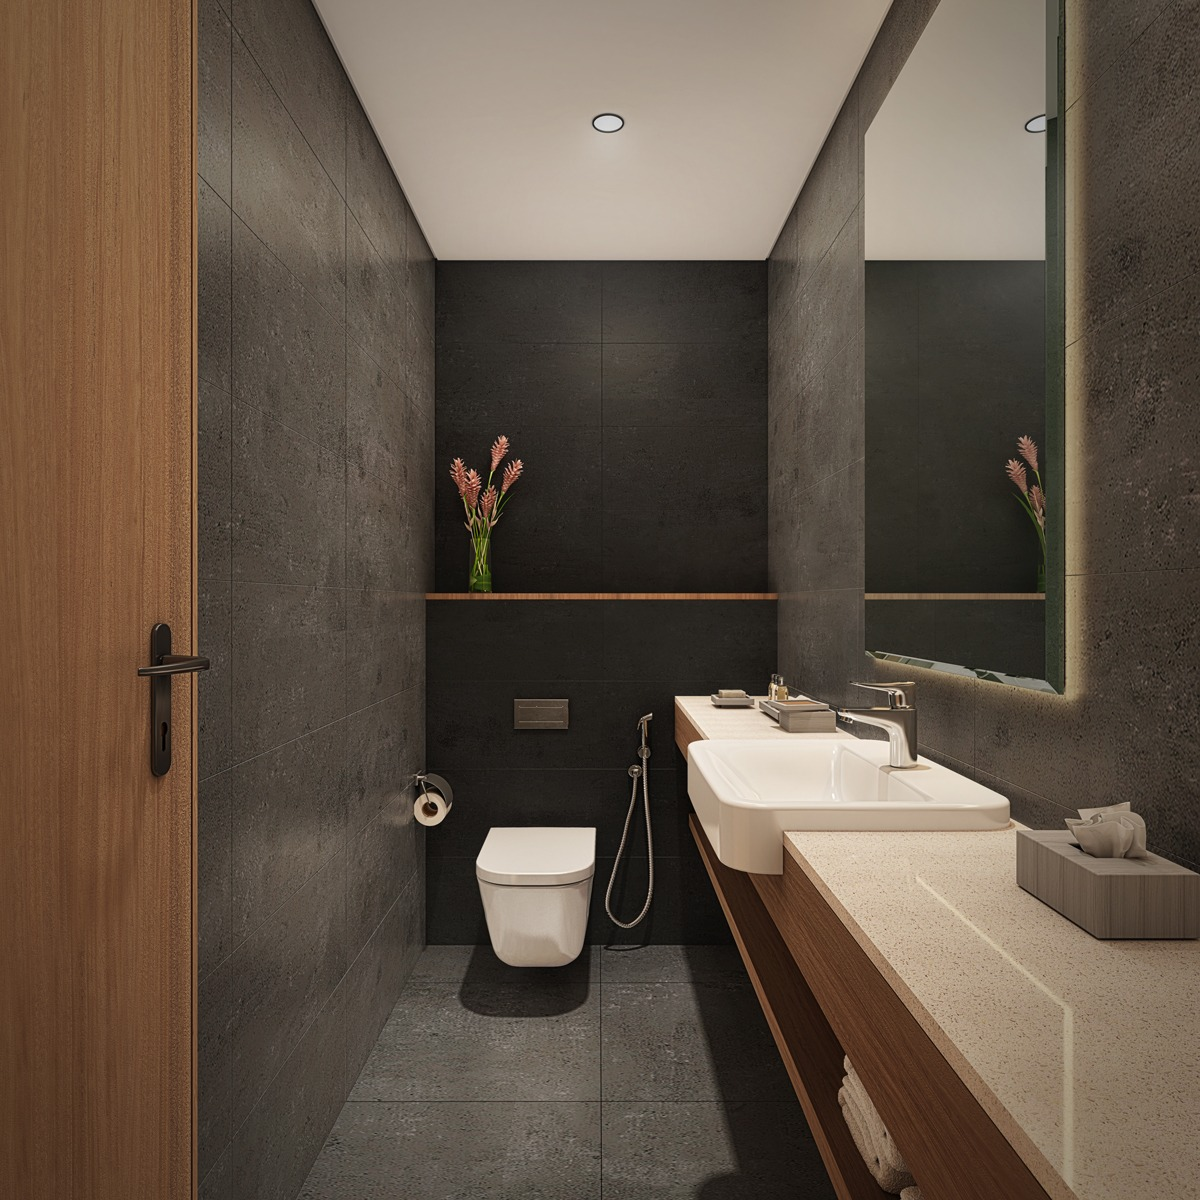 https://www.edgedesign.ae/wp-content/uploads/2019/02/Naples-by-Giovanni-Boutique-Suites-Two-Bedroom-Apartment_Bathroom.jpg